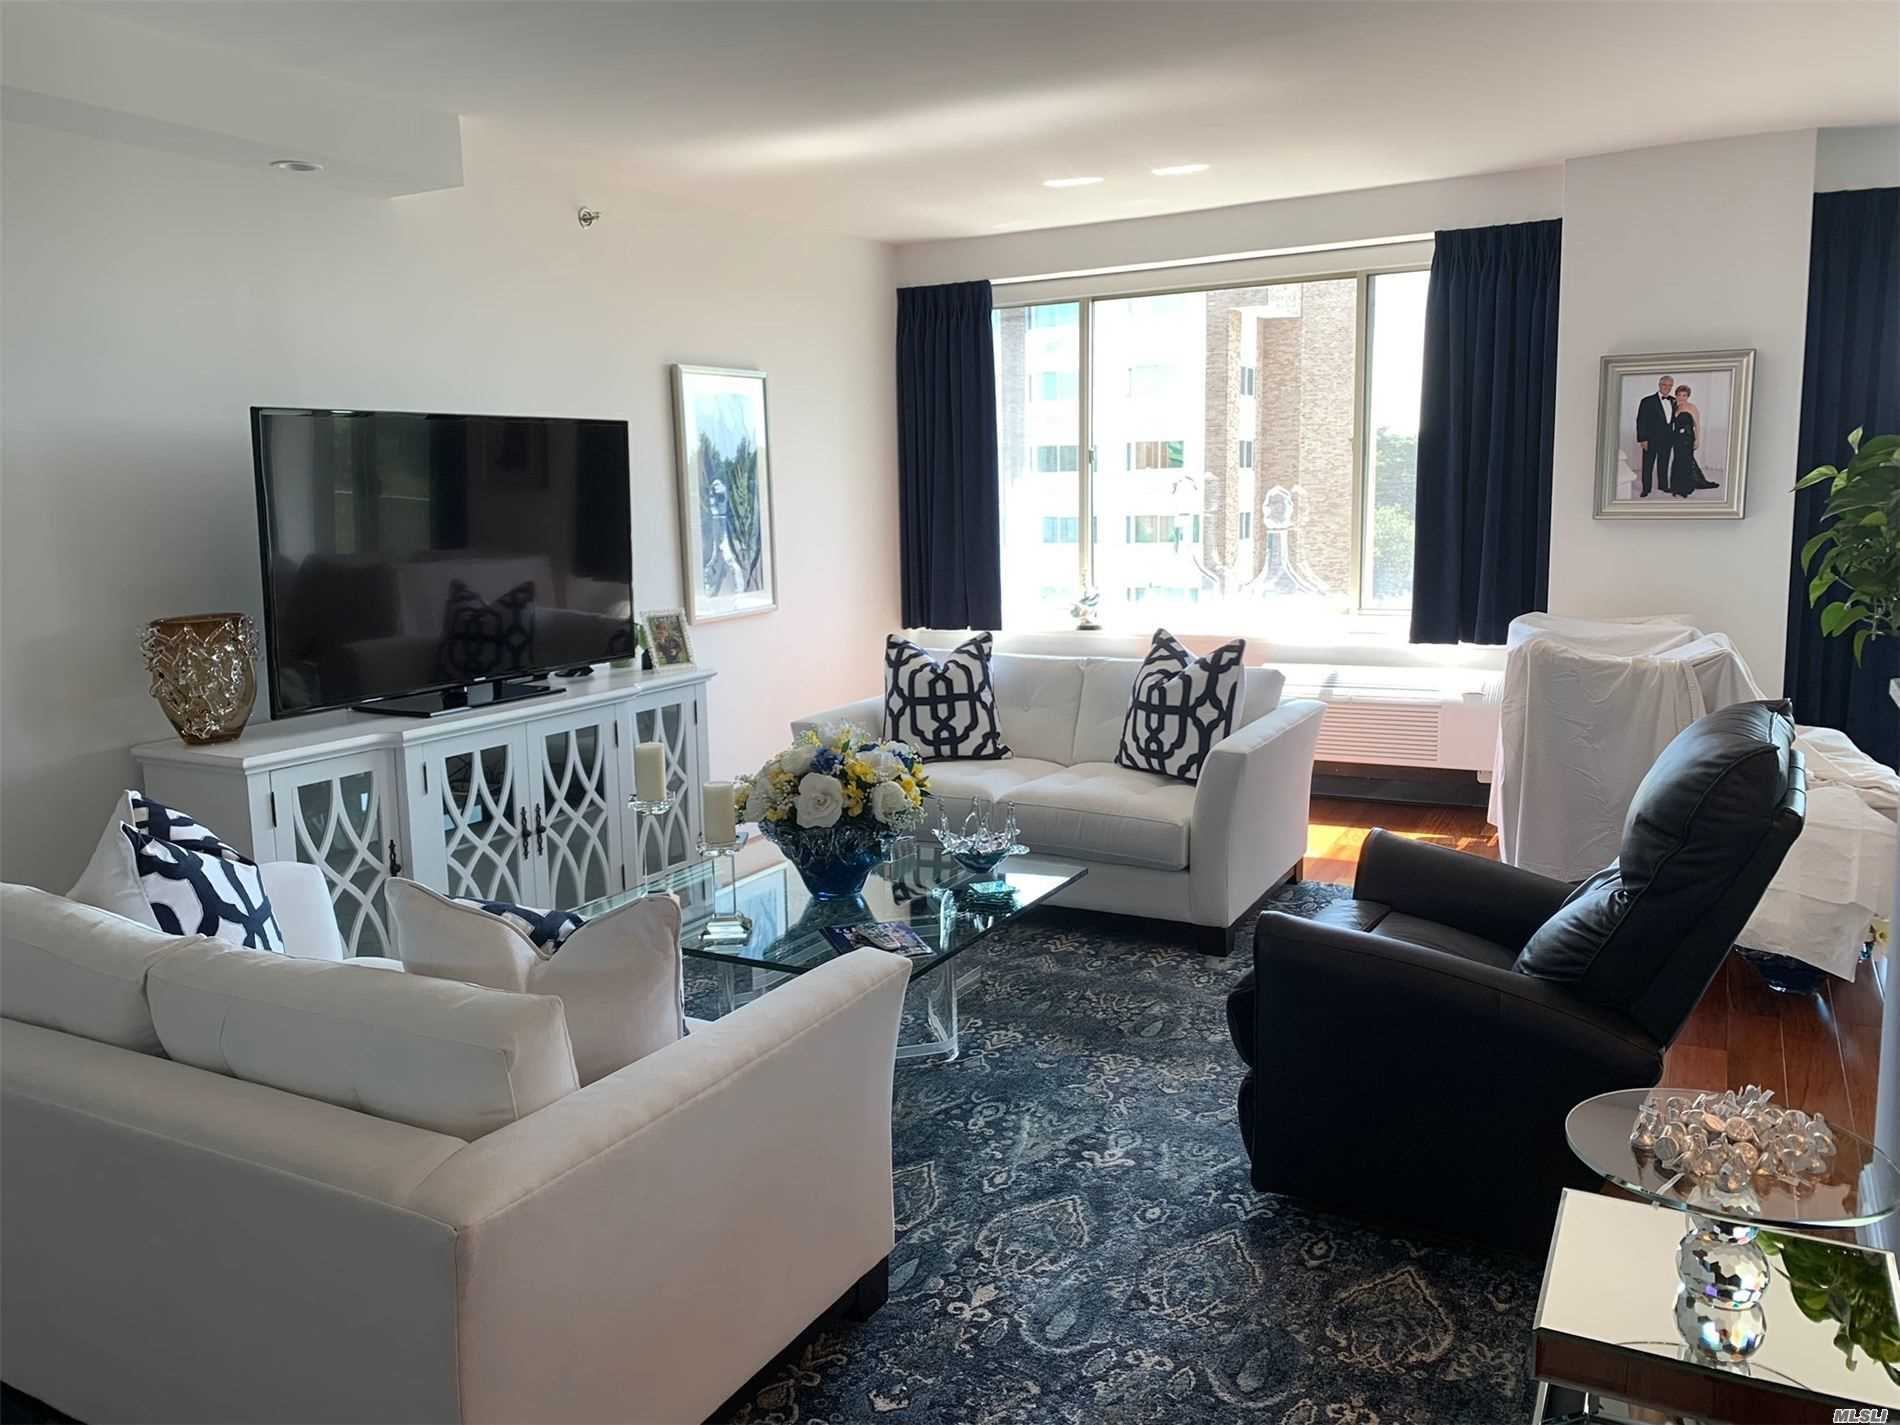 Property for sale at 111 Cherry Valley Avenue # 614W, Garden City NY 11530, Garden City,  New York 11530